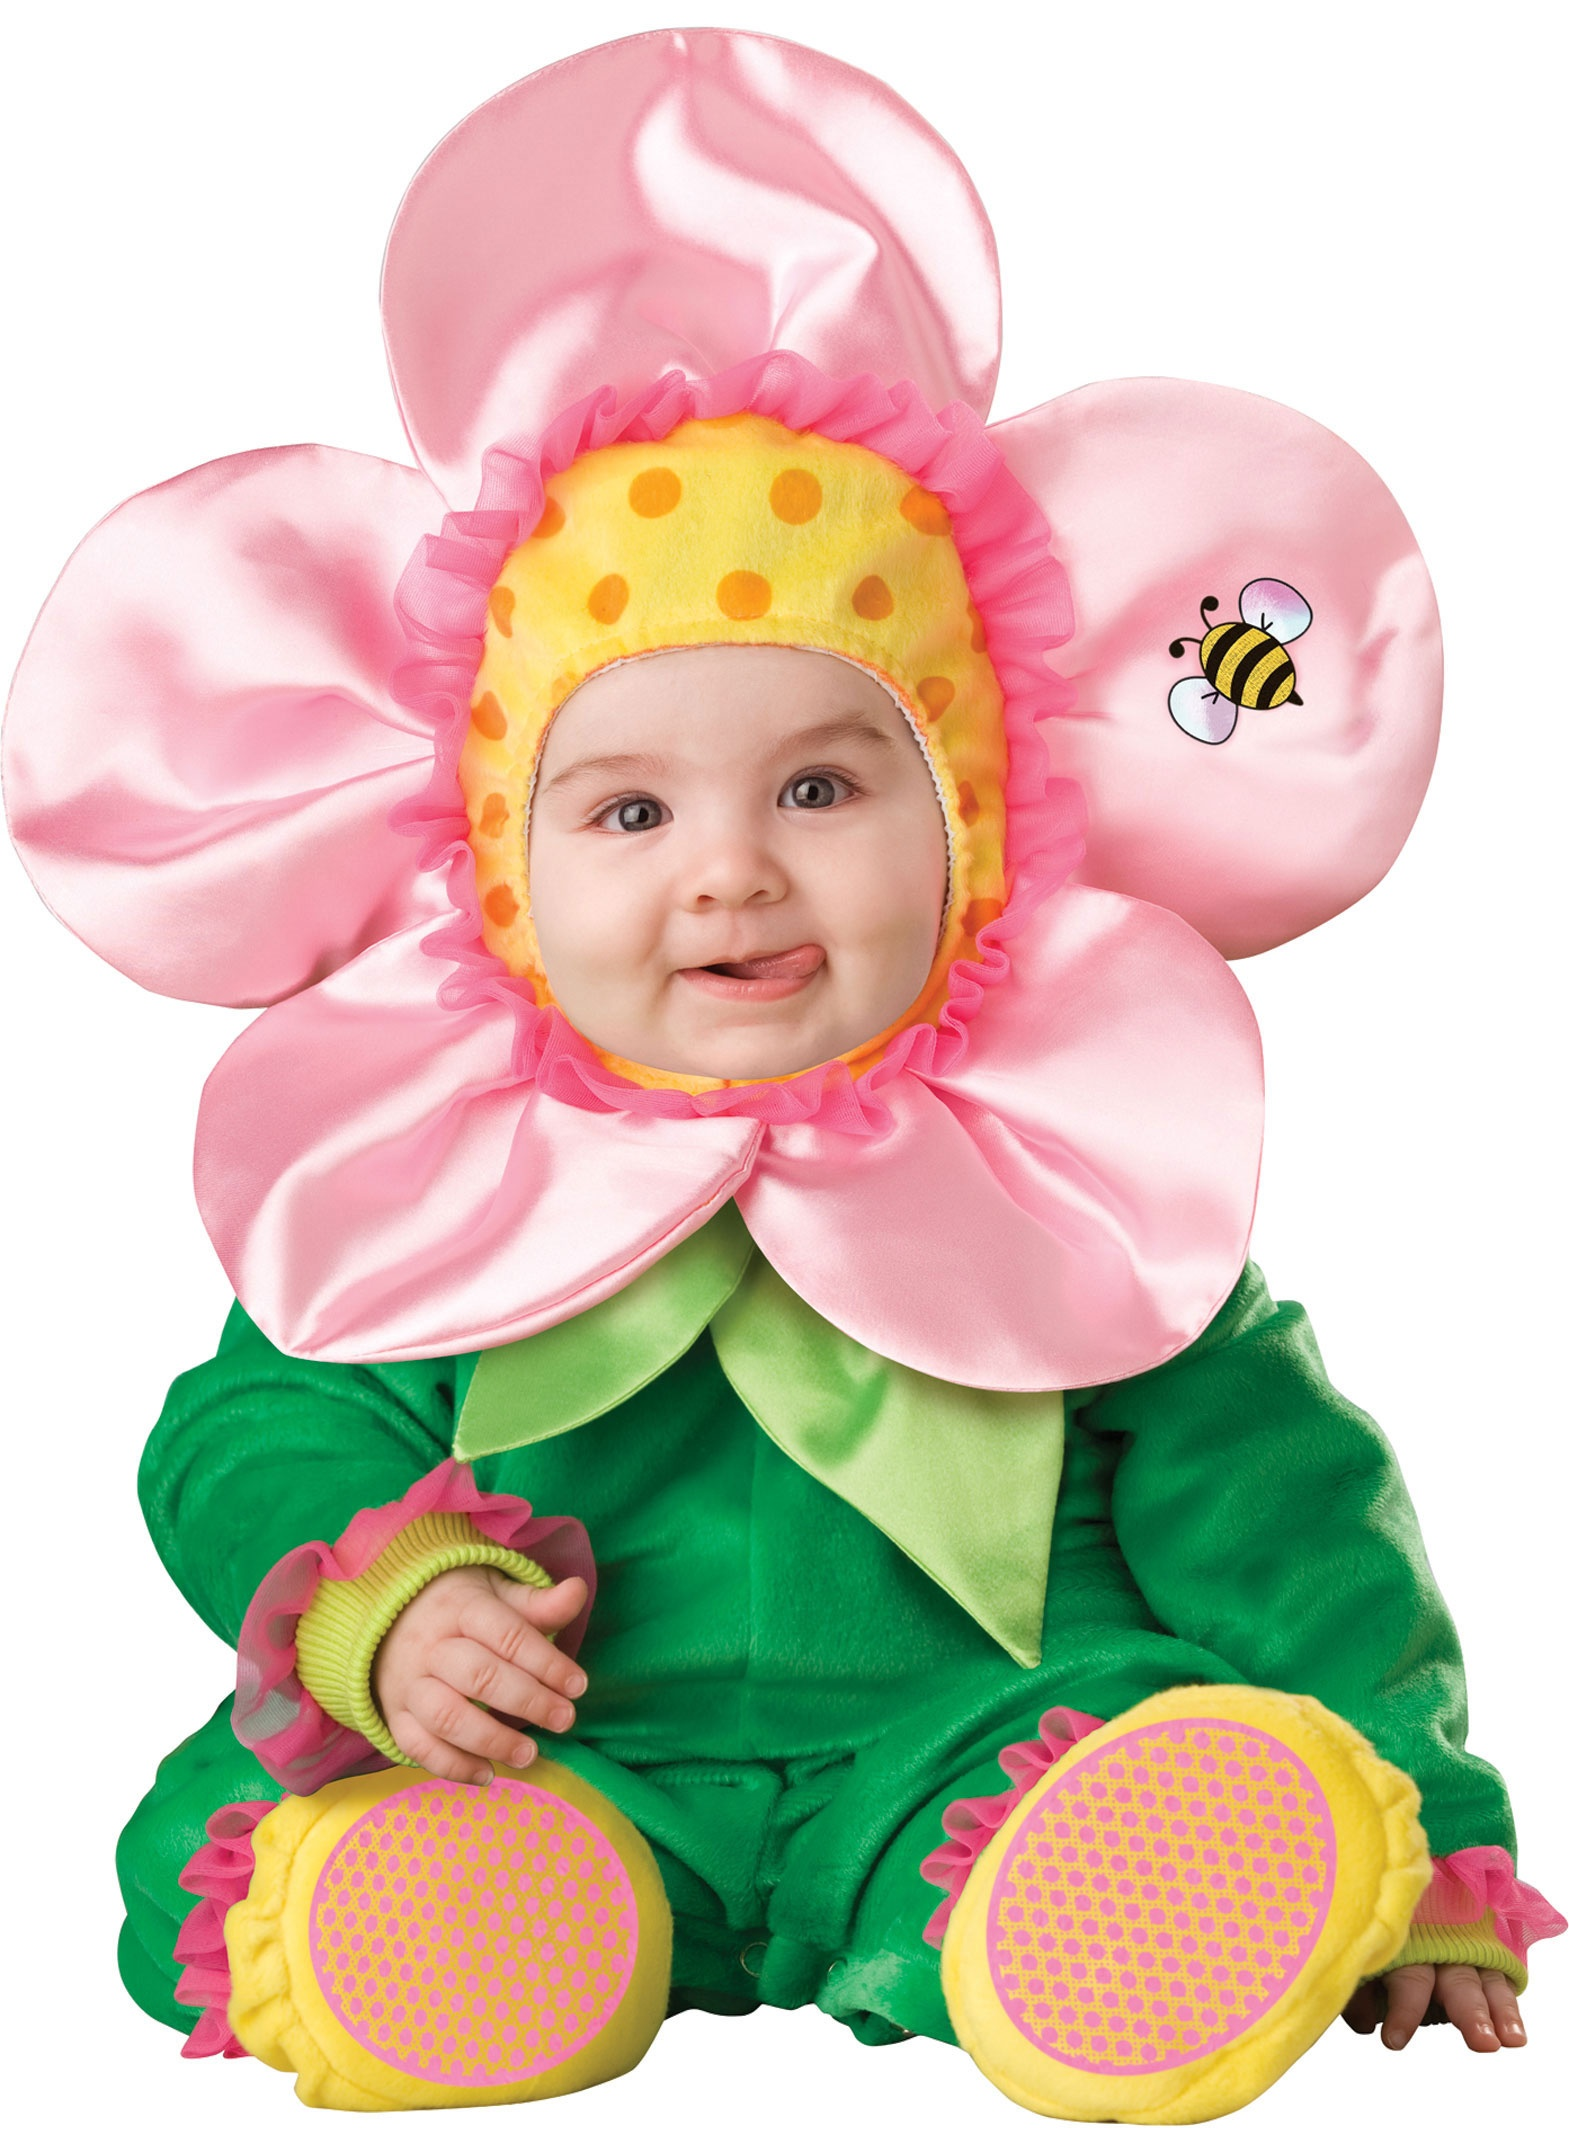 Little Pink Blossom Baby Costume Mr Costumes